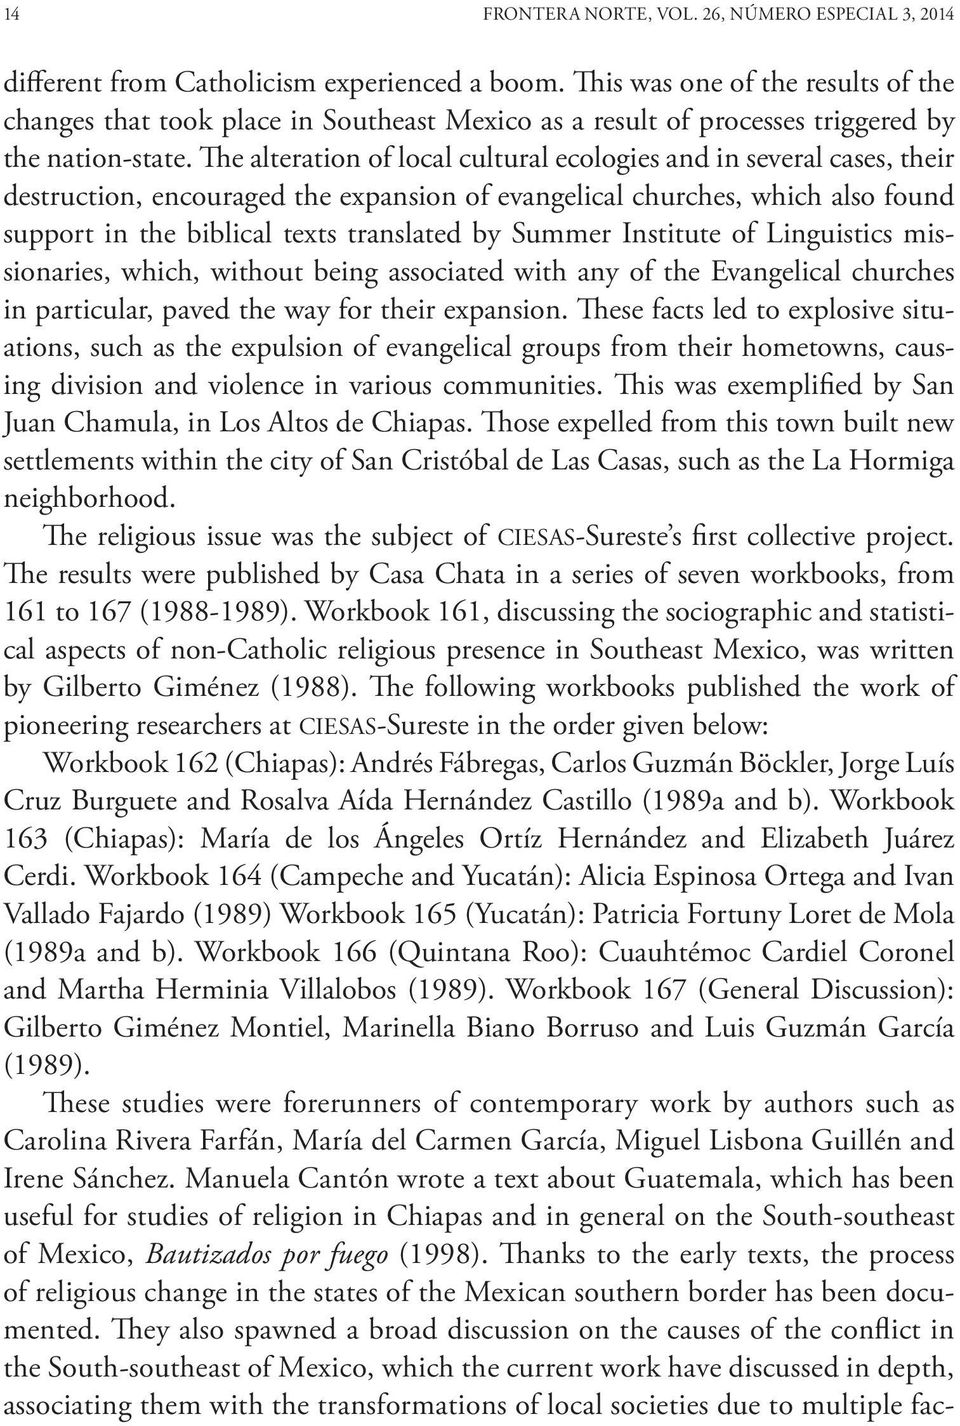 The alteration of local cultural ecologies and in several cases, their destruction, encouraged the expansion of evangelical churches, which also found support in the biblical texts translated by